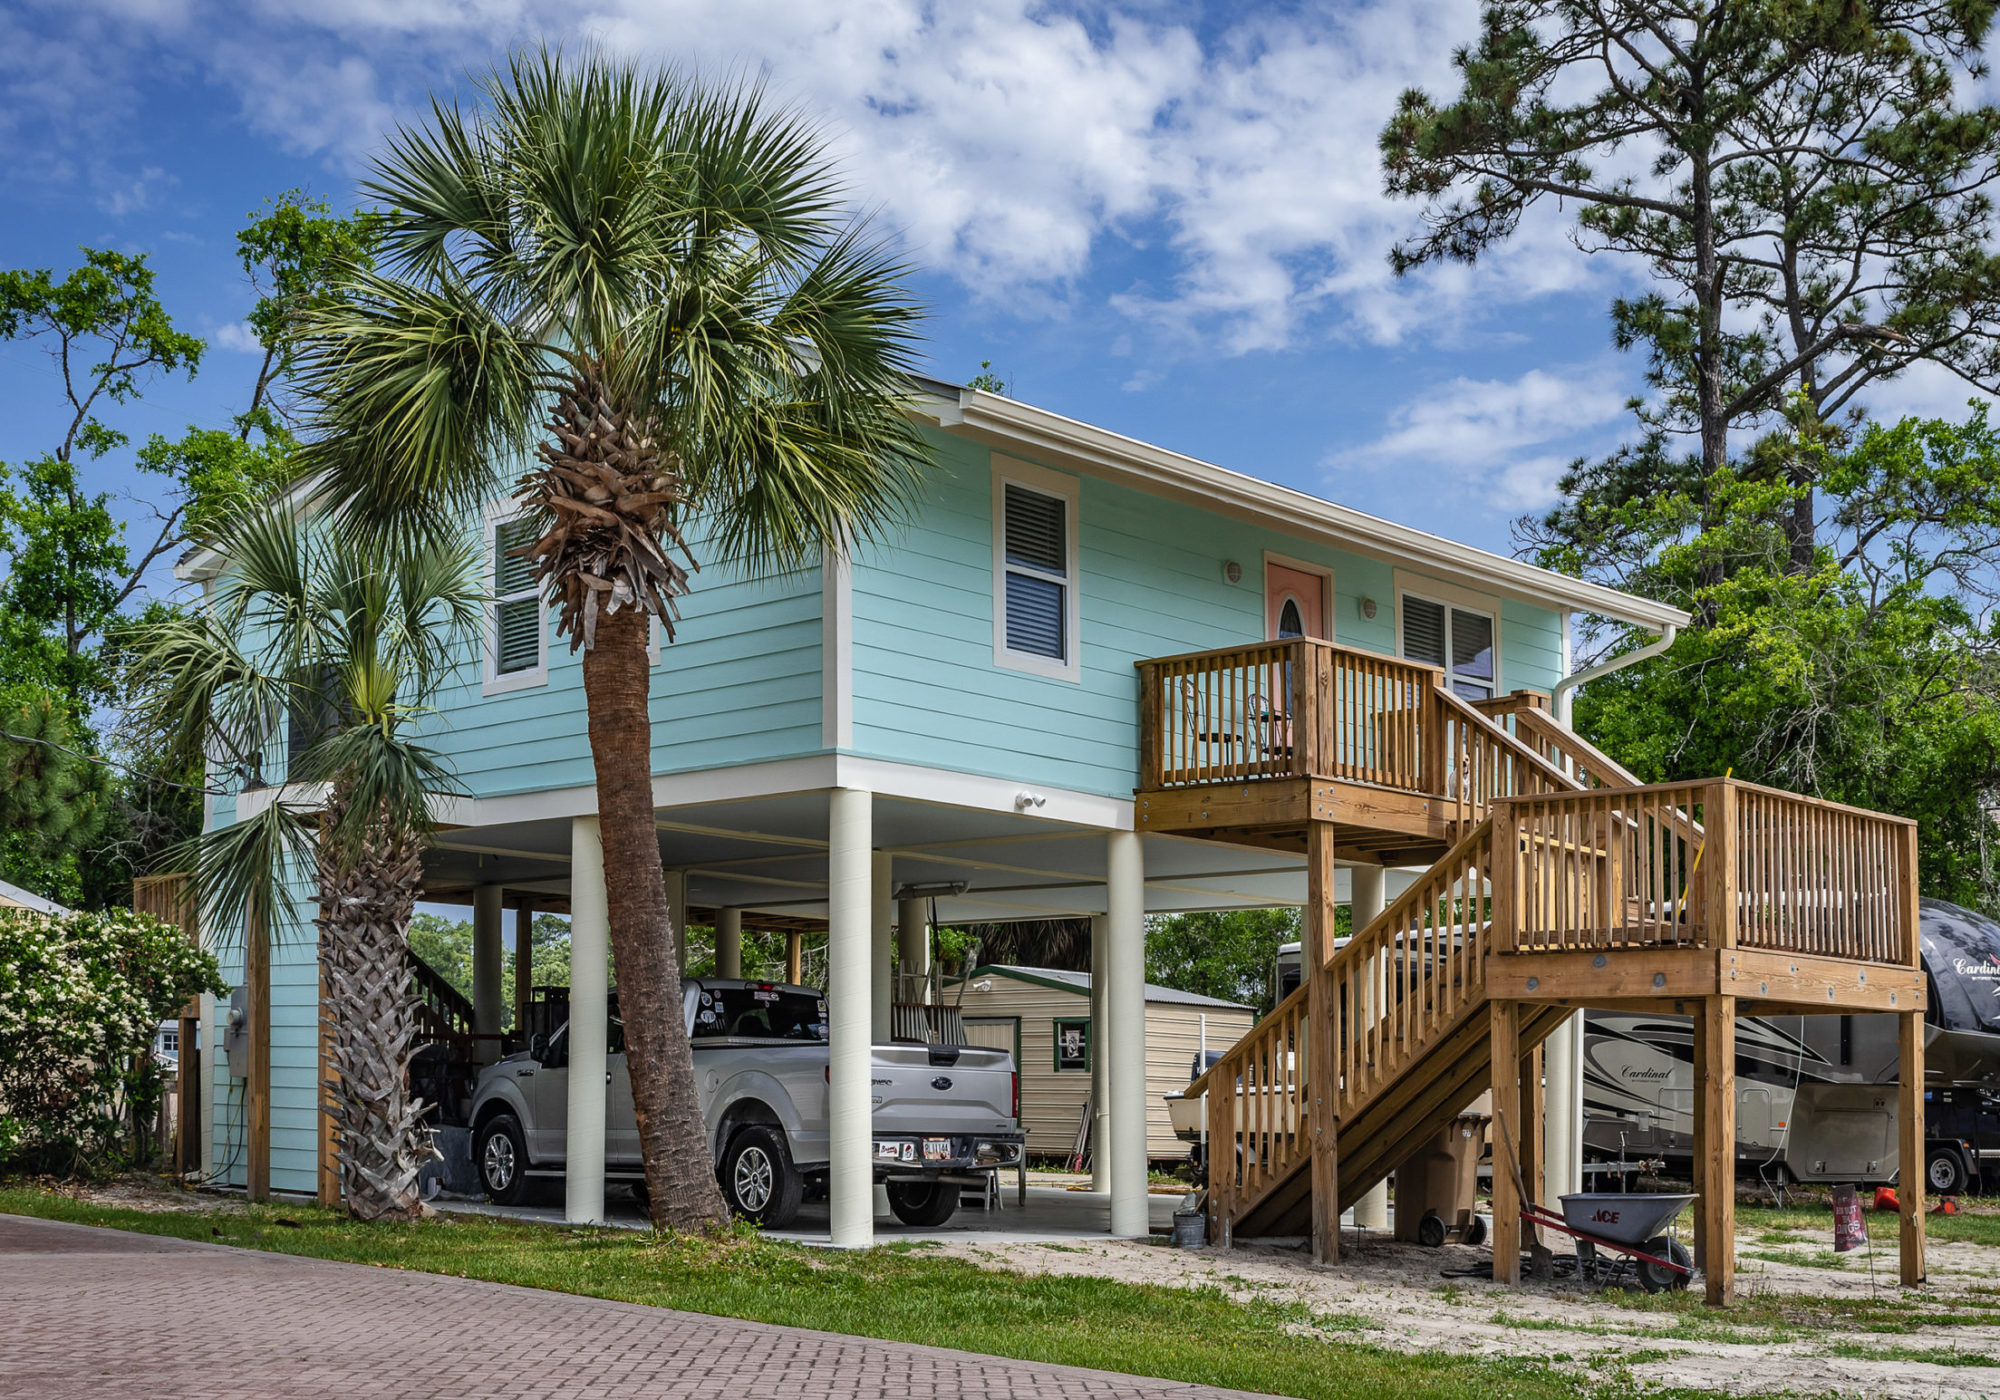 An elevated home on Tybee Island. This area flooded during Hurricane Matthew and then again during Hurricane Irma, spurring some residents to raise their homes. Credit: Teake Zuidema for Nexus Media News